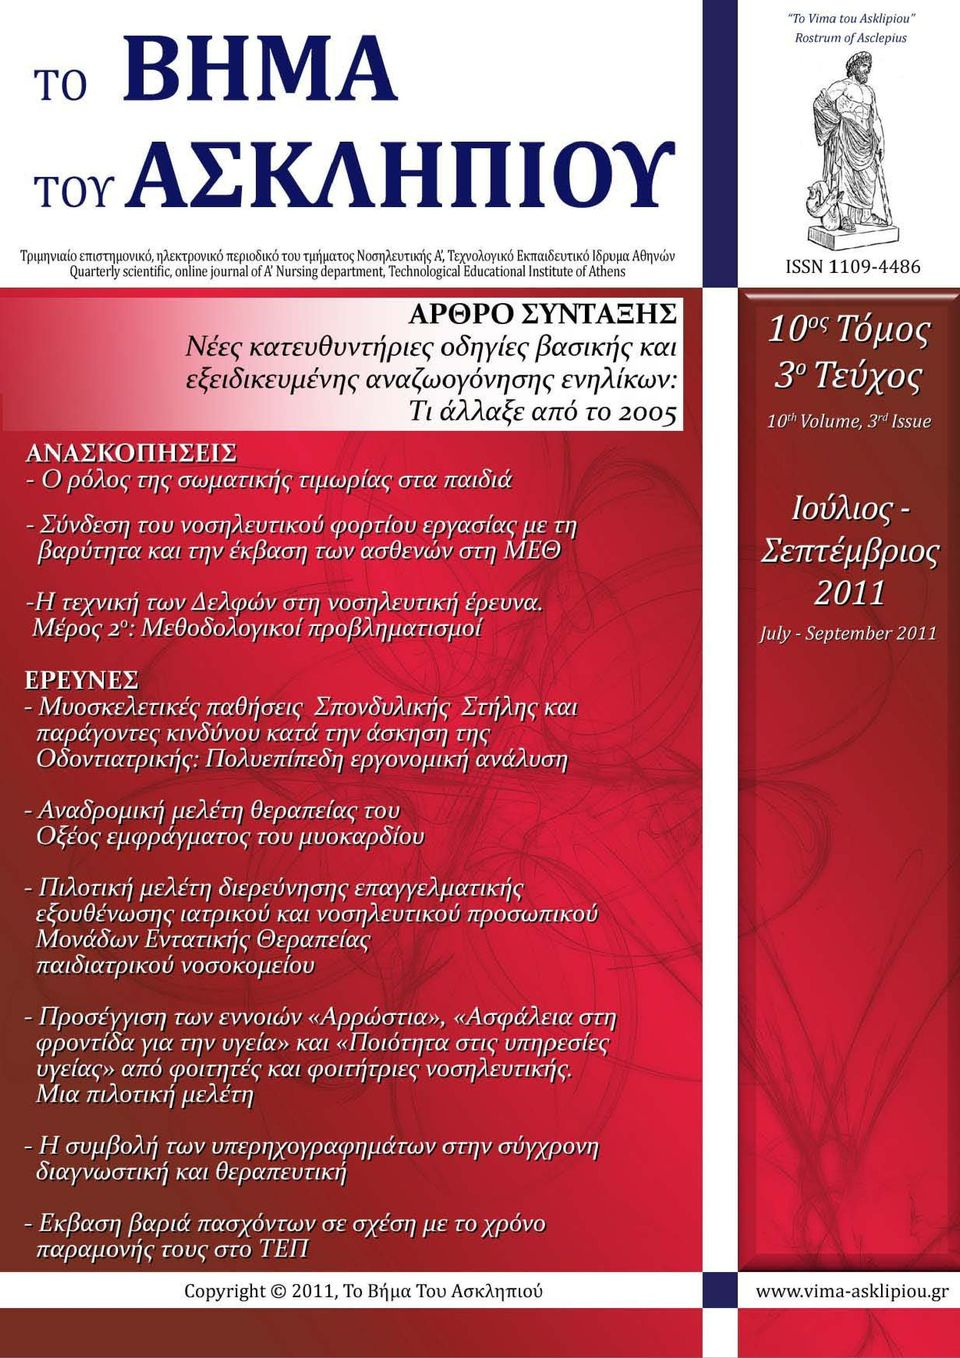 Asclepius 10 th Volume, 3 rd Issue, July